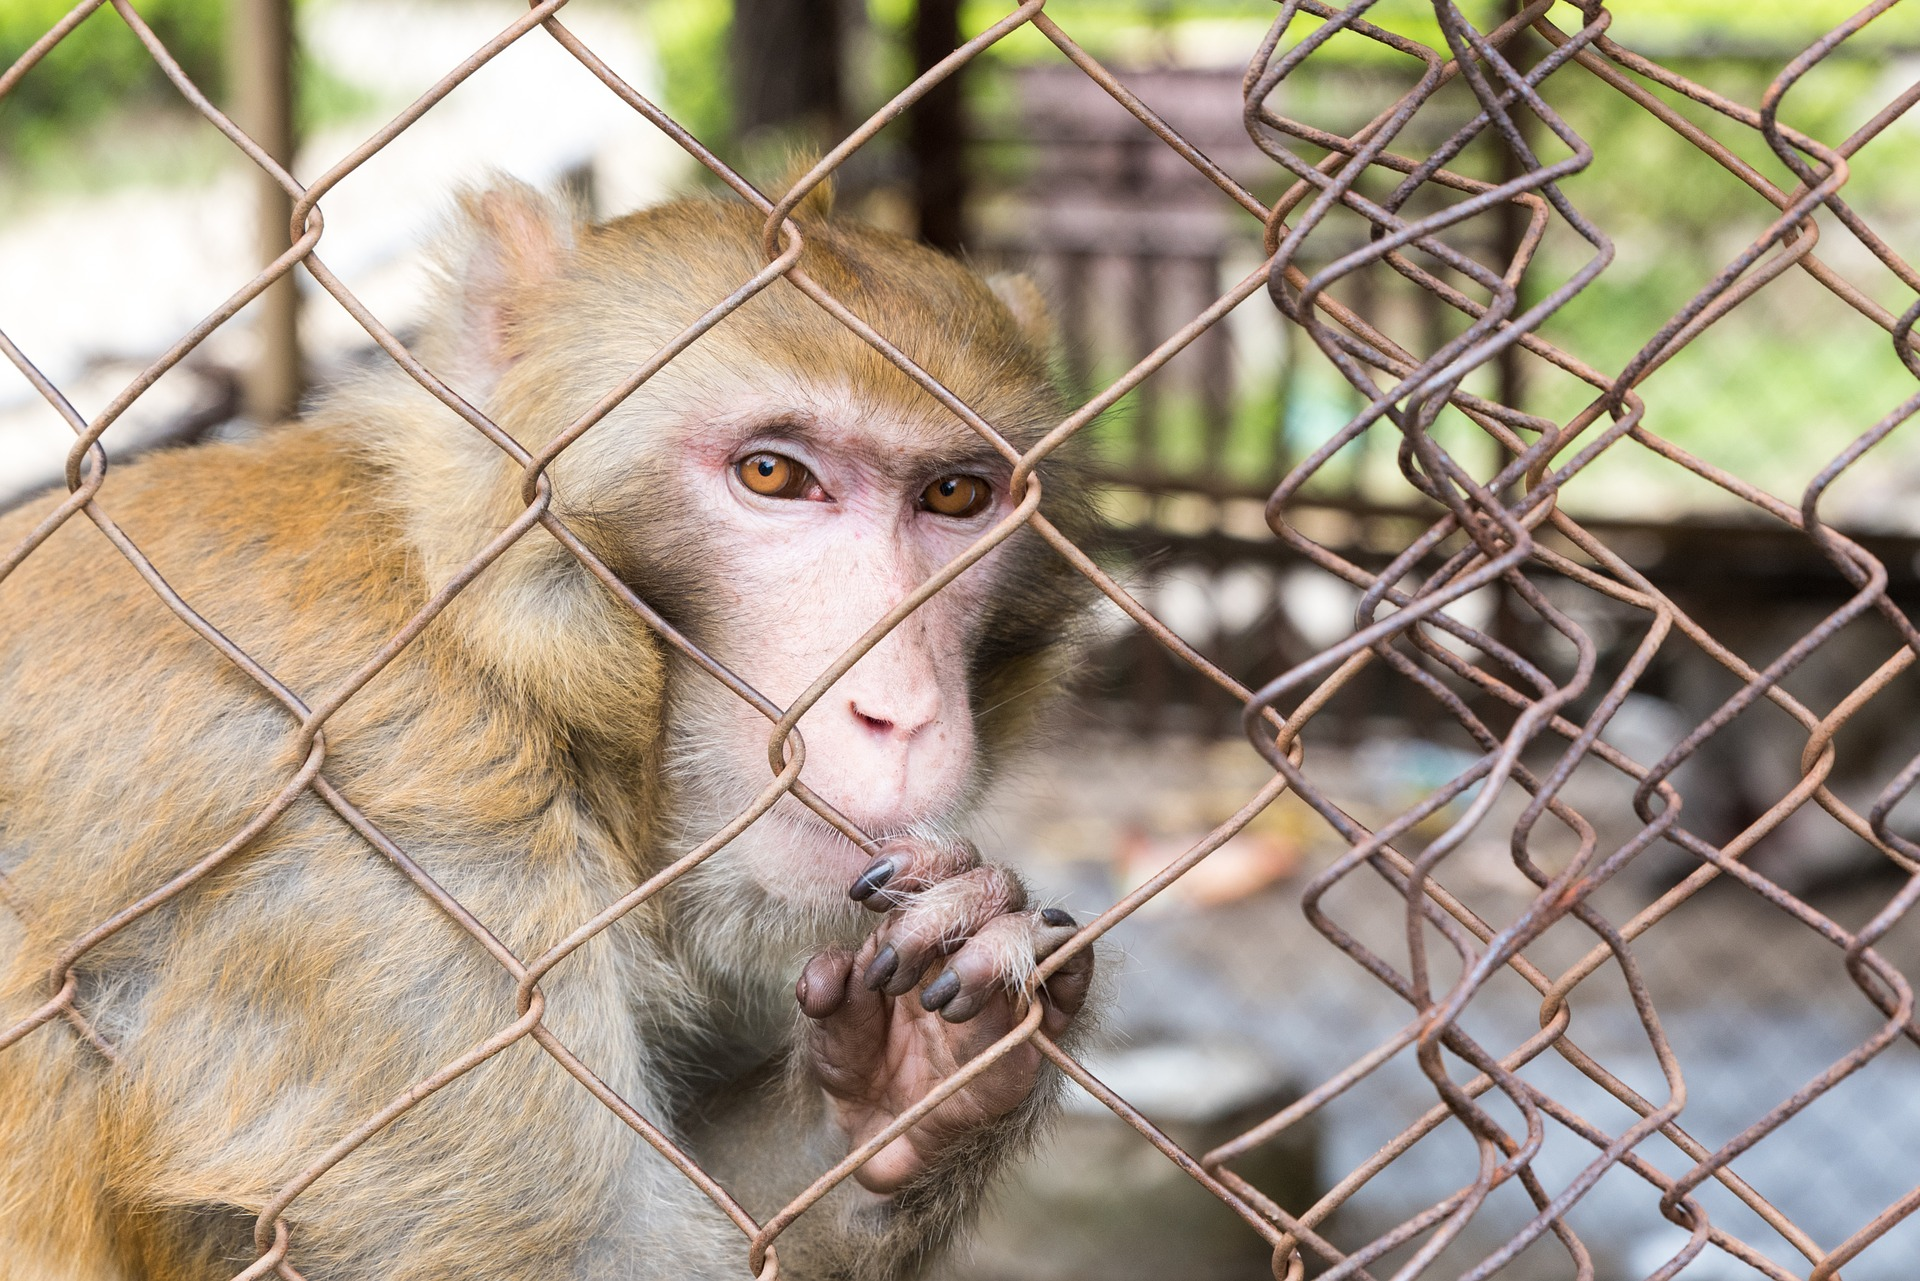 What You Need to Know About Roadside Zoos